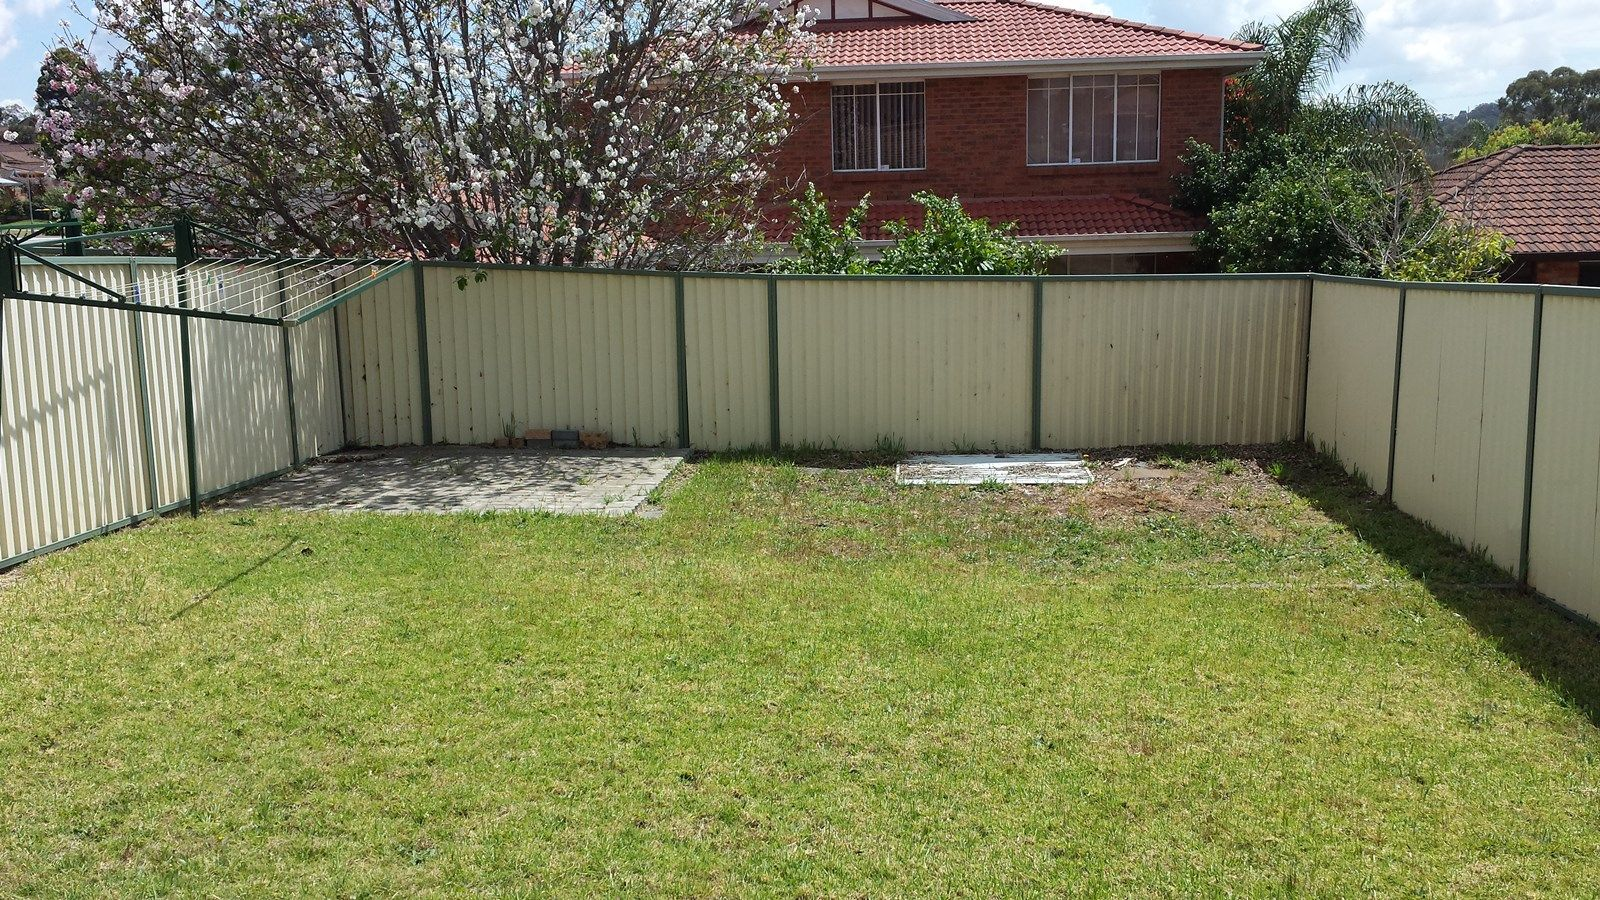 2/103 Thunderbolt Drive, Raby NSW 2566, Image 6